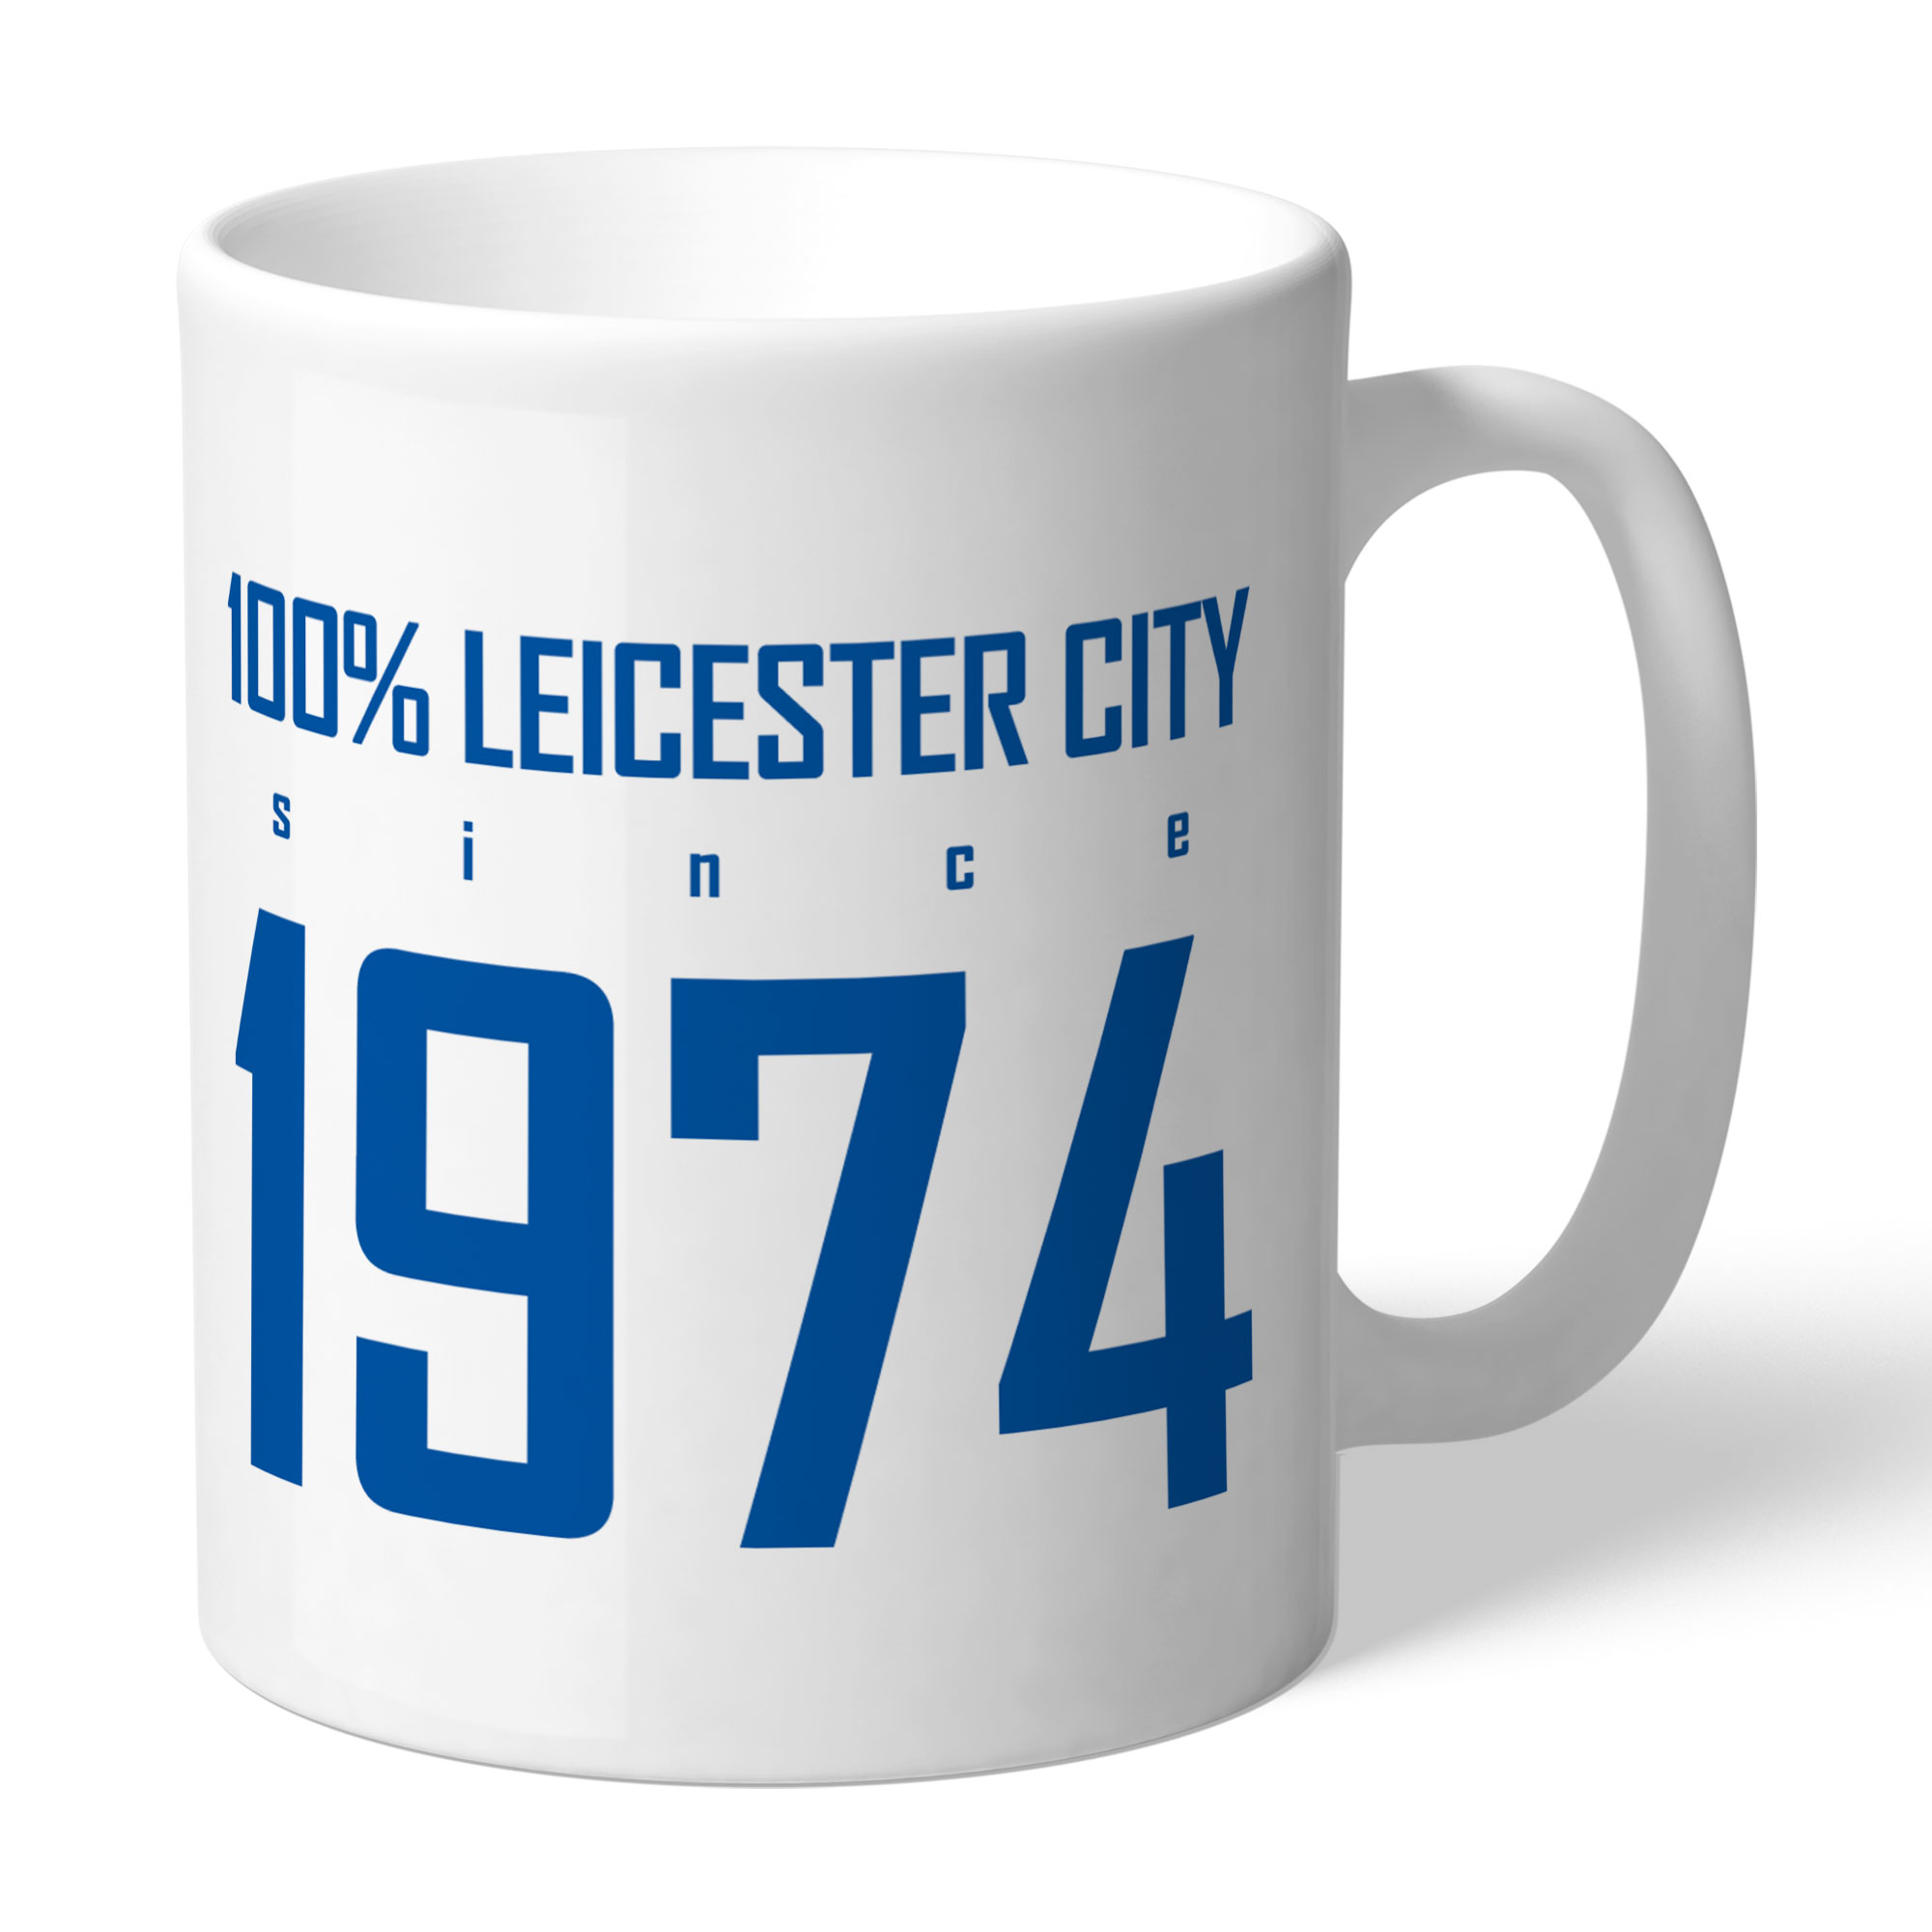 Leicester City FC 100 Percent Mug